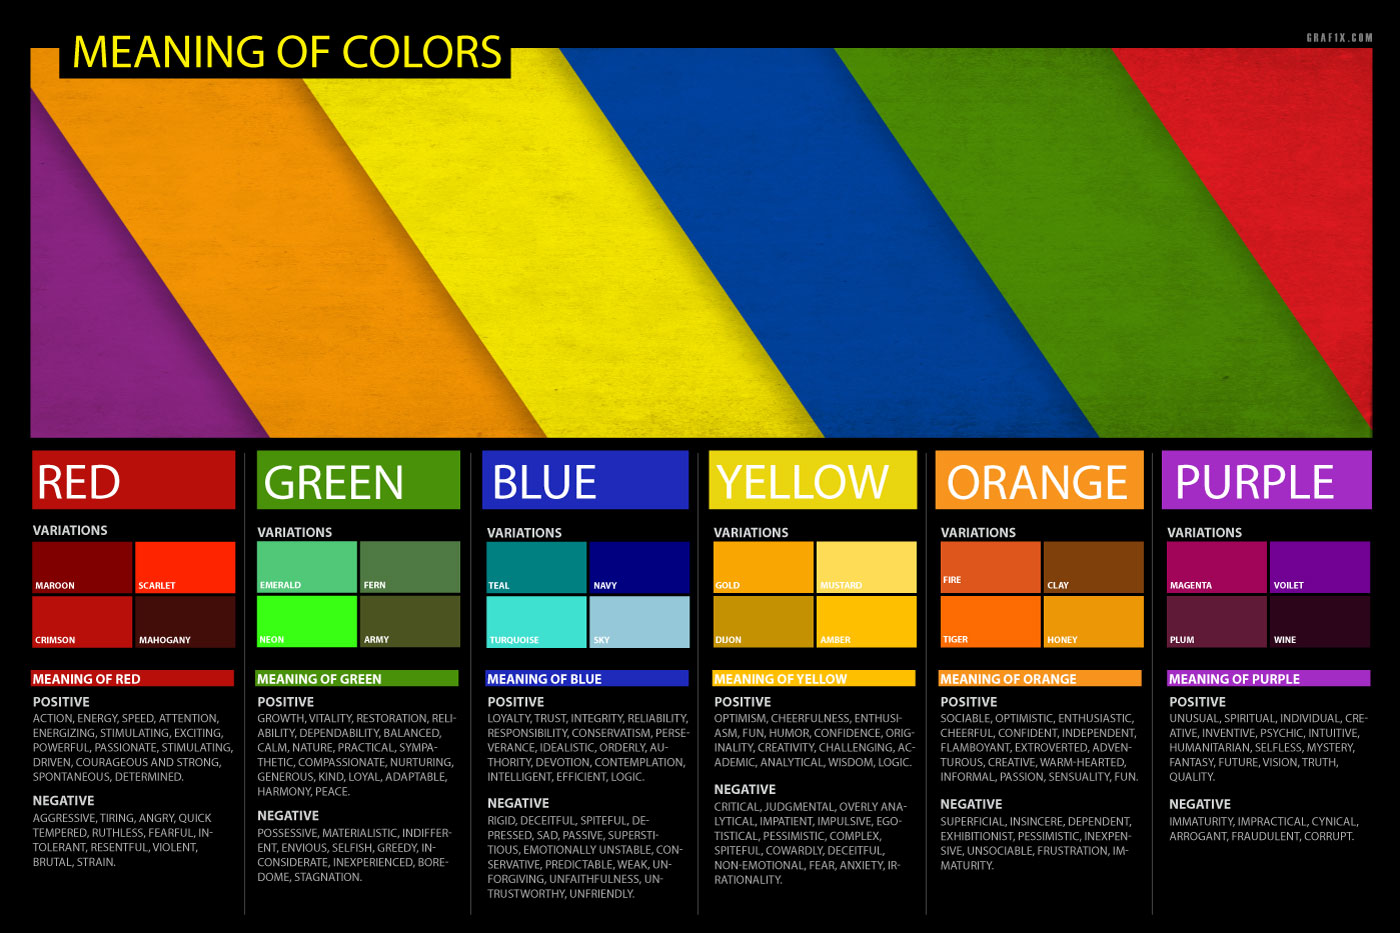 Color Meaning Poster Graf1x